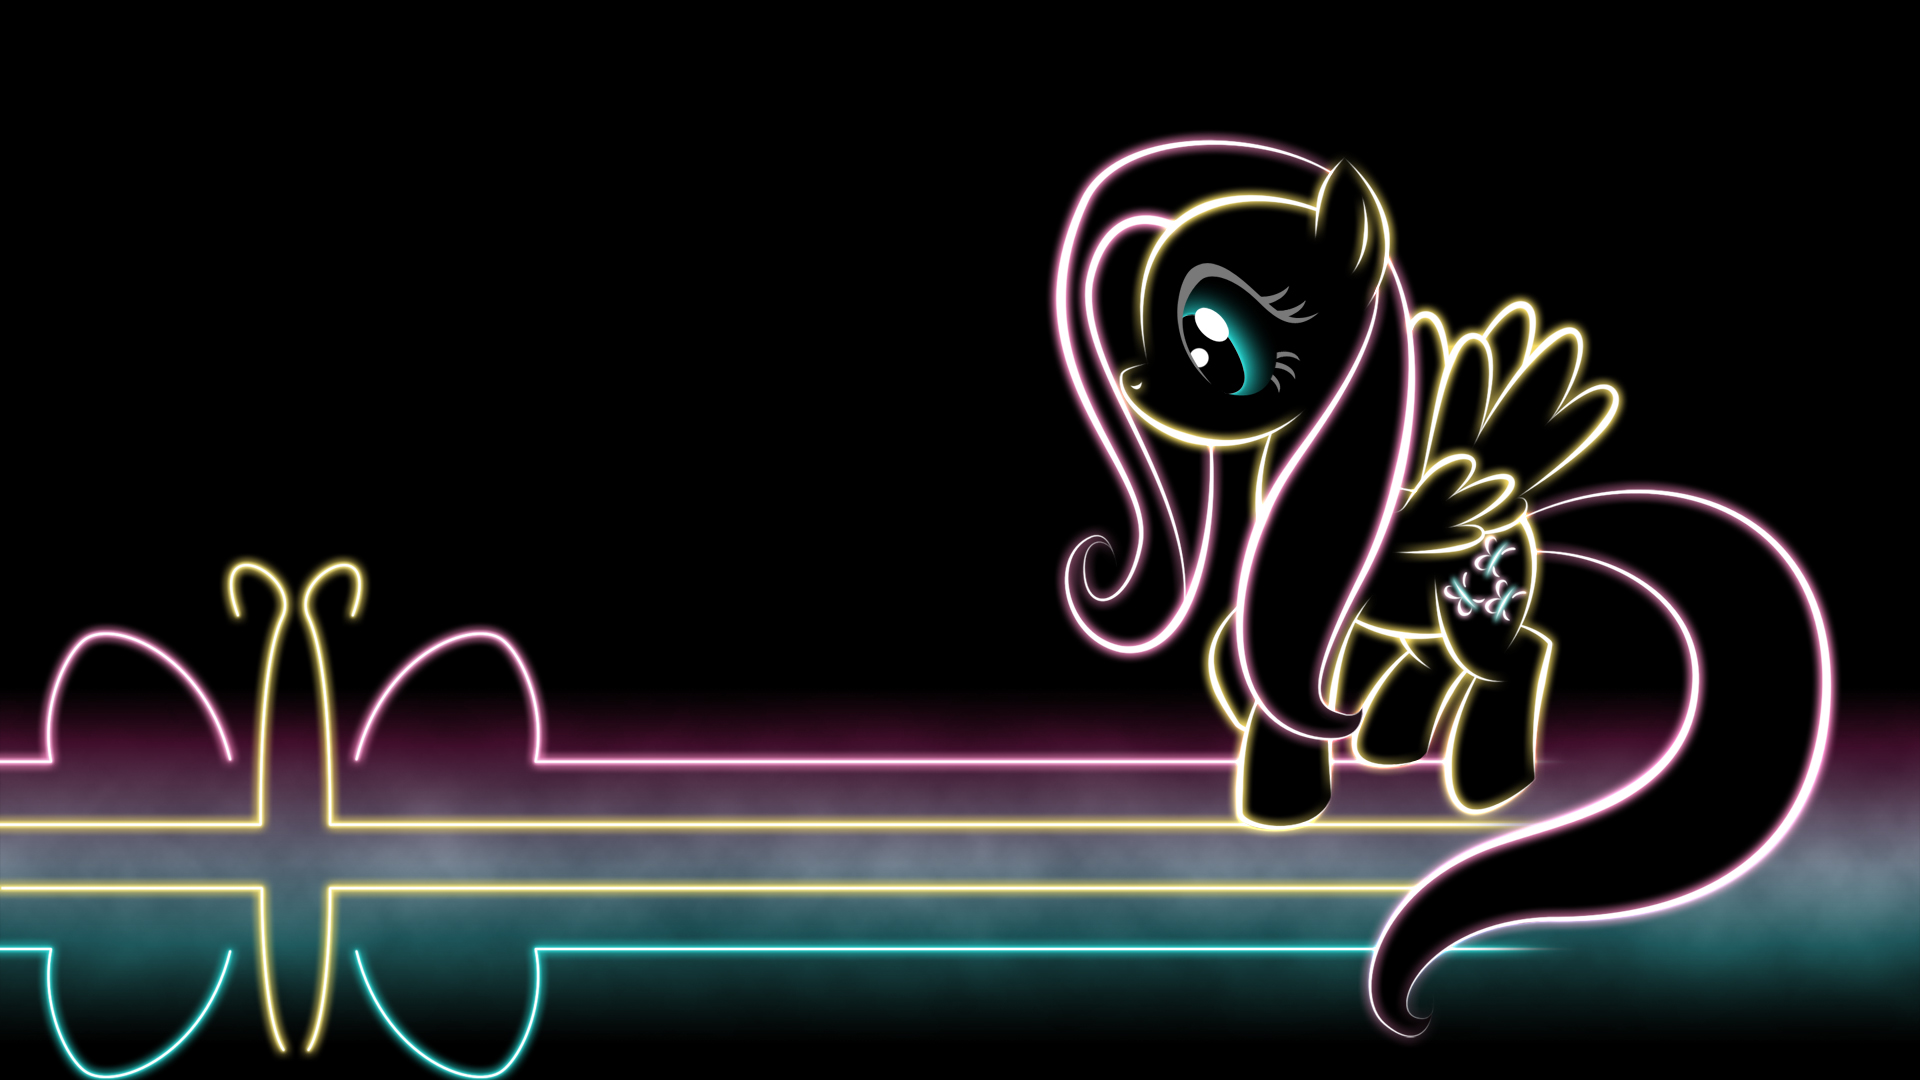 My Little Pony Friendship is Magic images MLP Glow Wallpapers 1920x1080